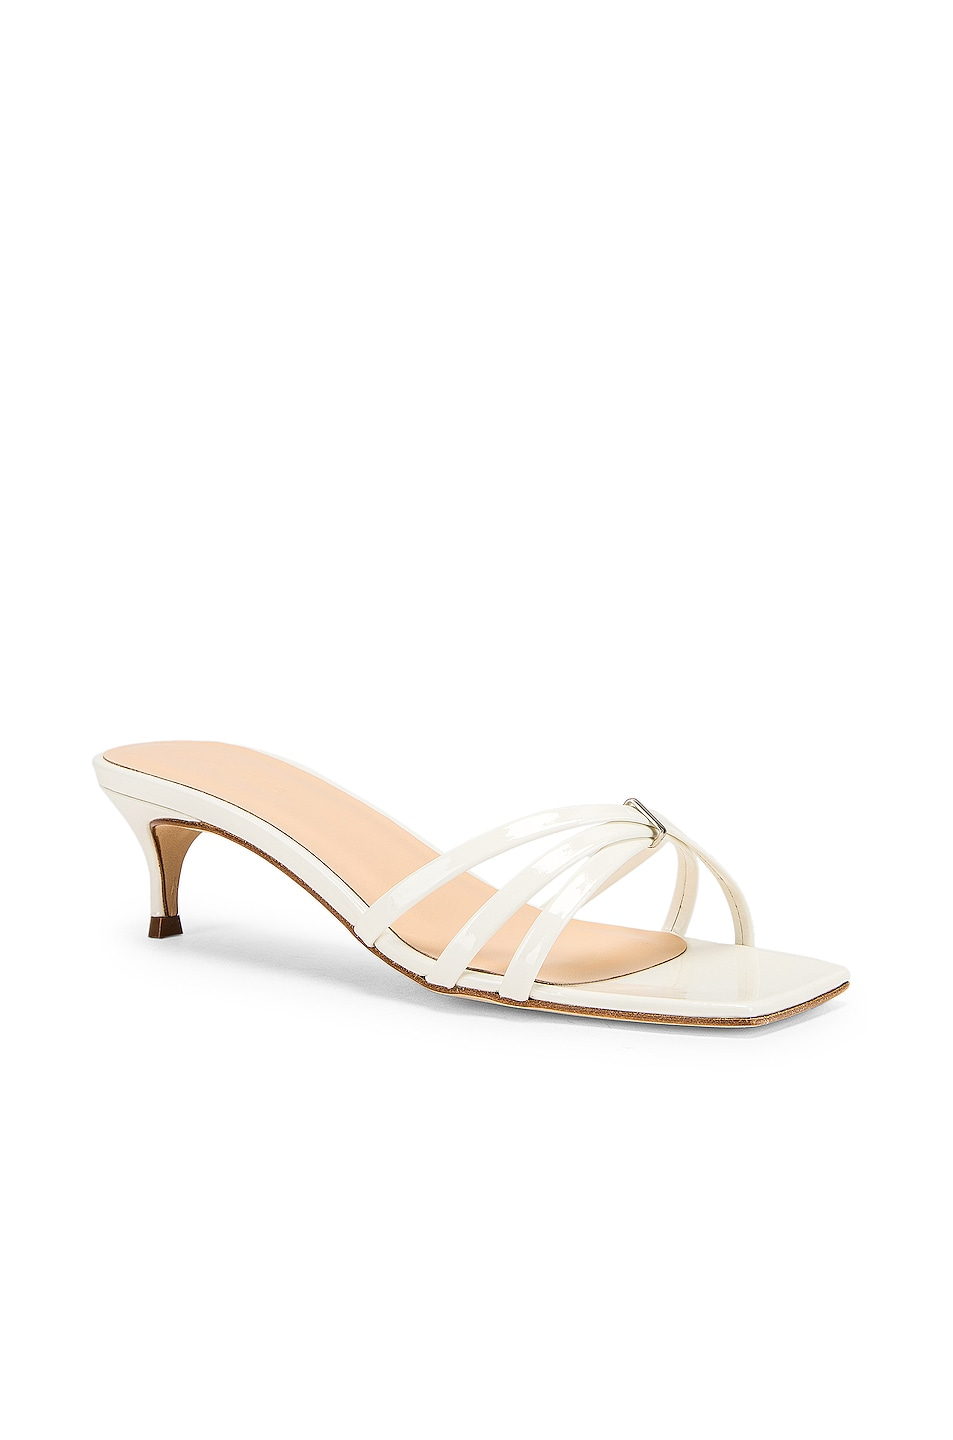 Image 2 of By Far Libra Sandal in White Patent Leather